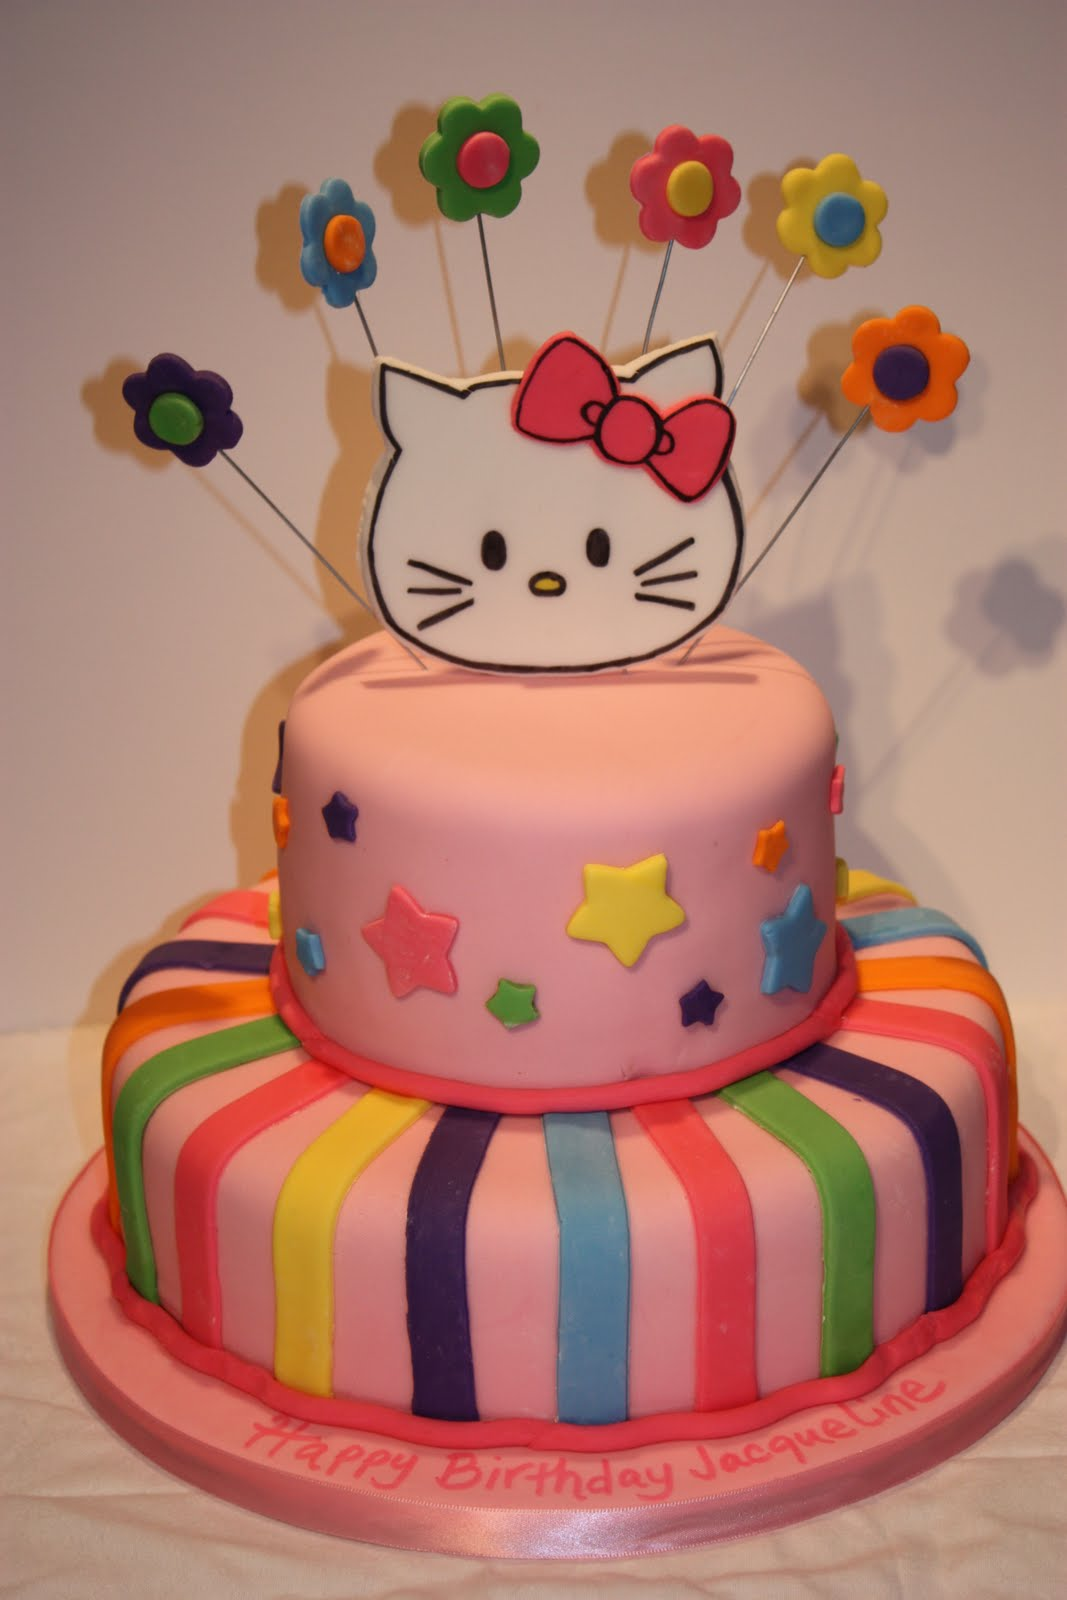 Whimsical by Design Hello Kitty Birthday Cake